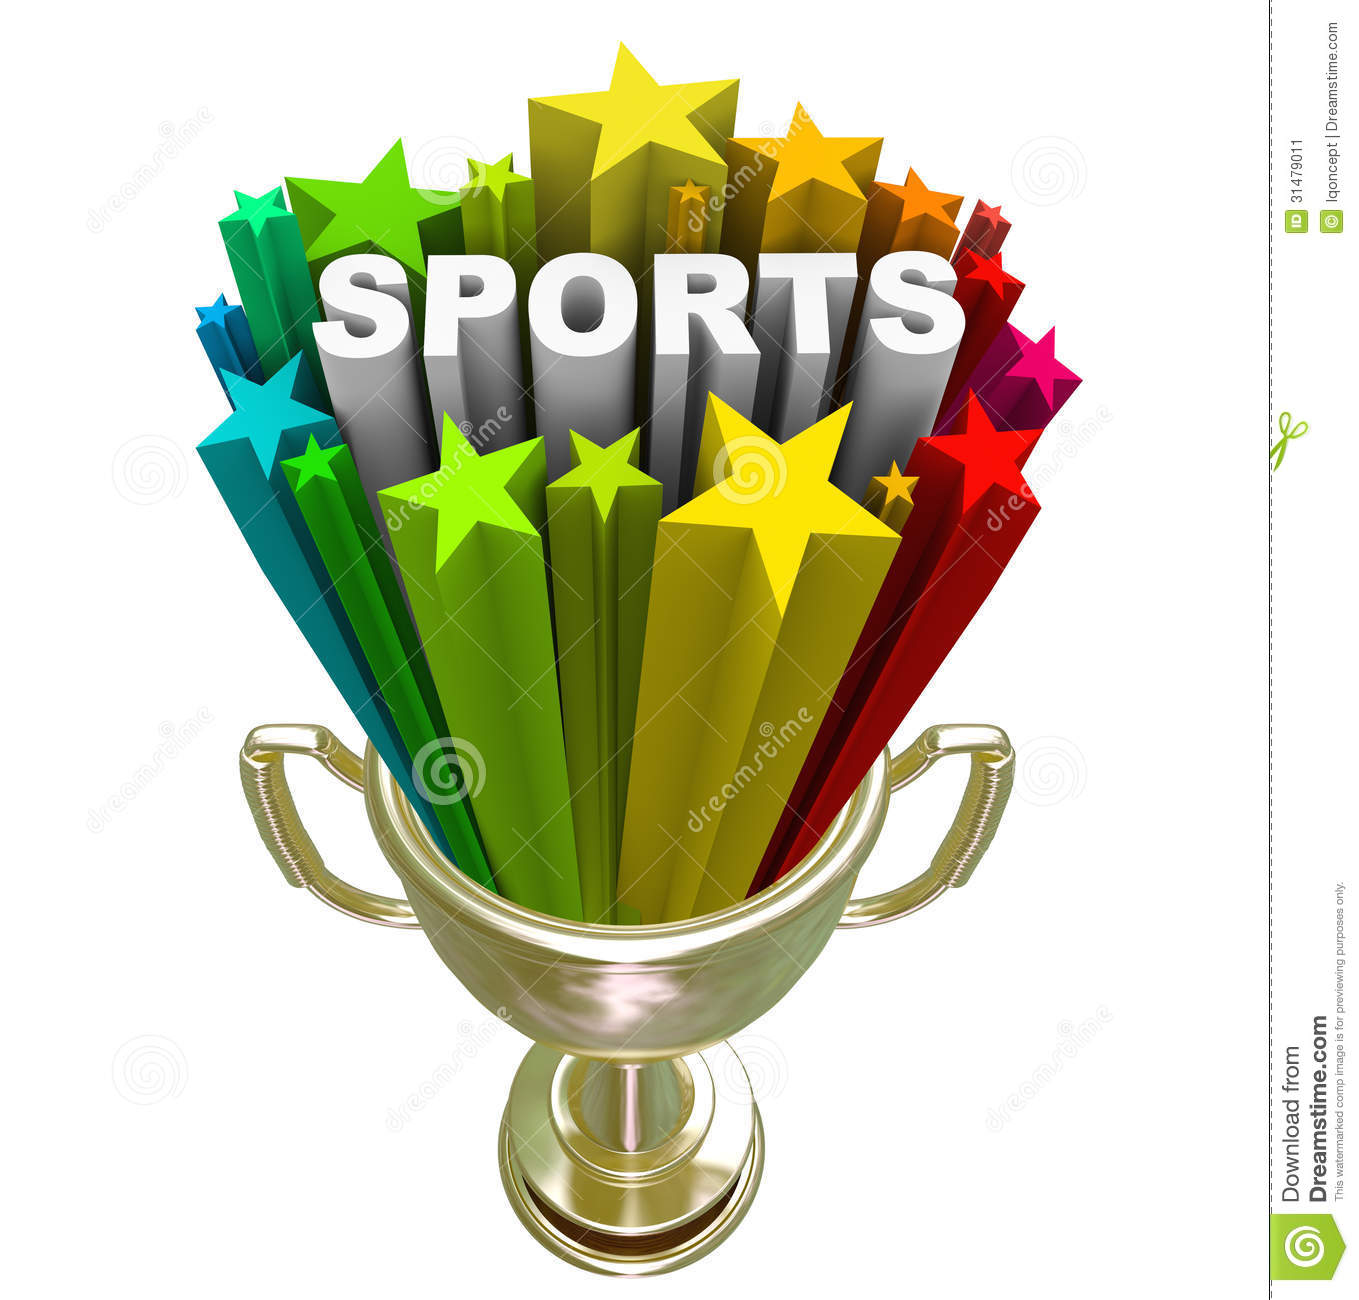 The word Sports in a starburst in a gold trophy to symbolize winning ...